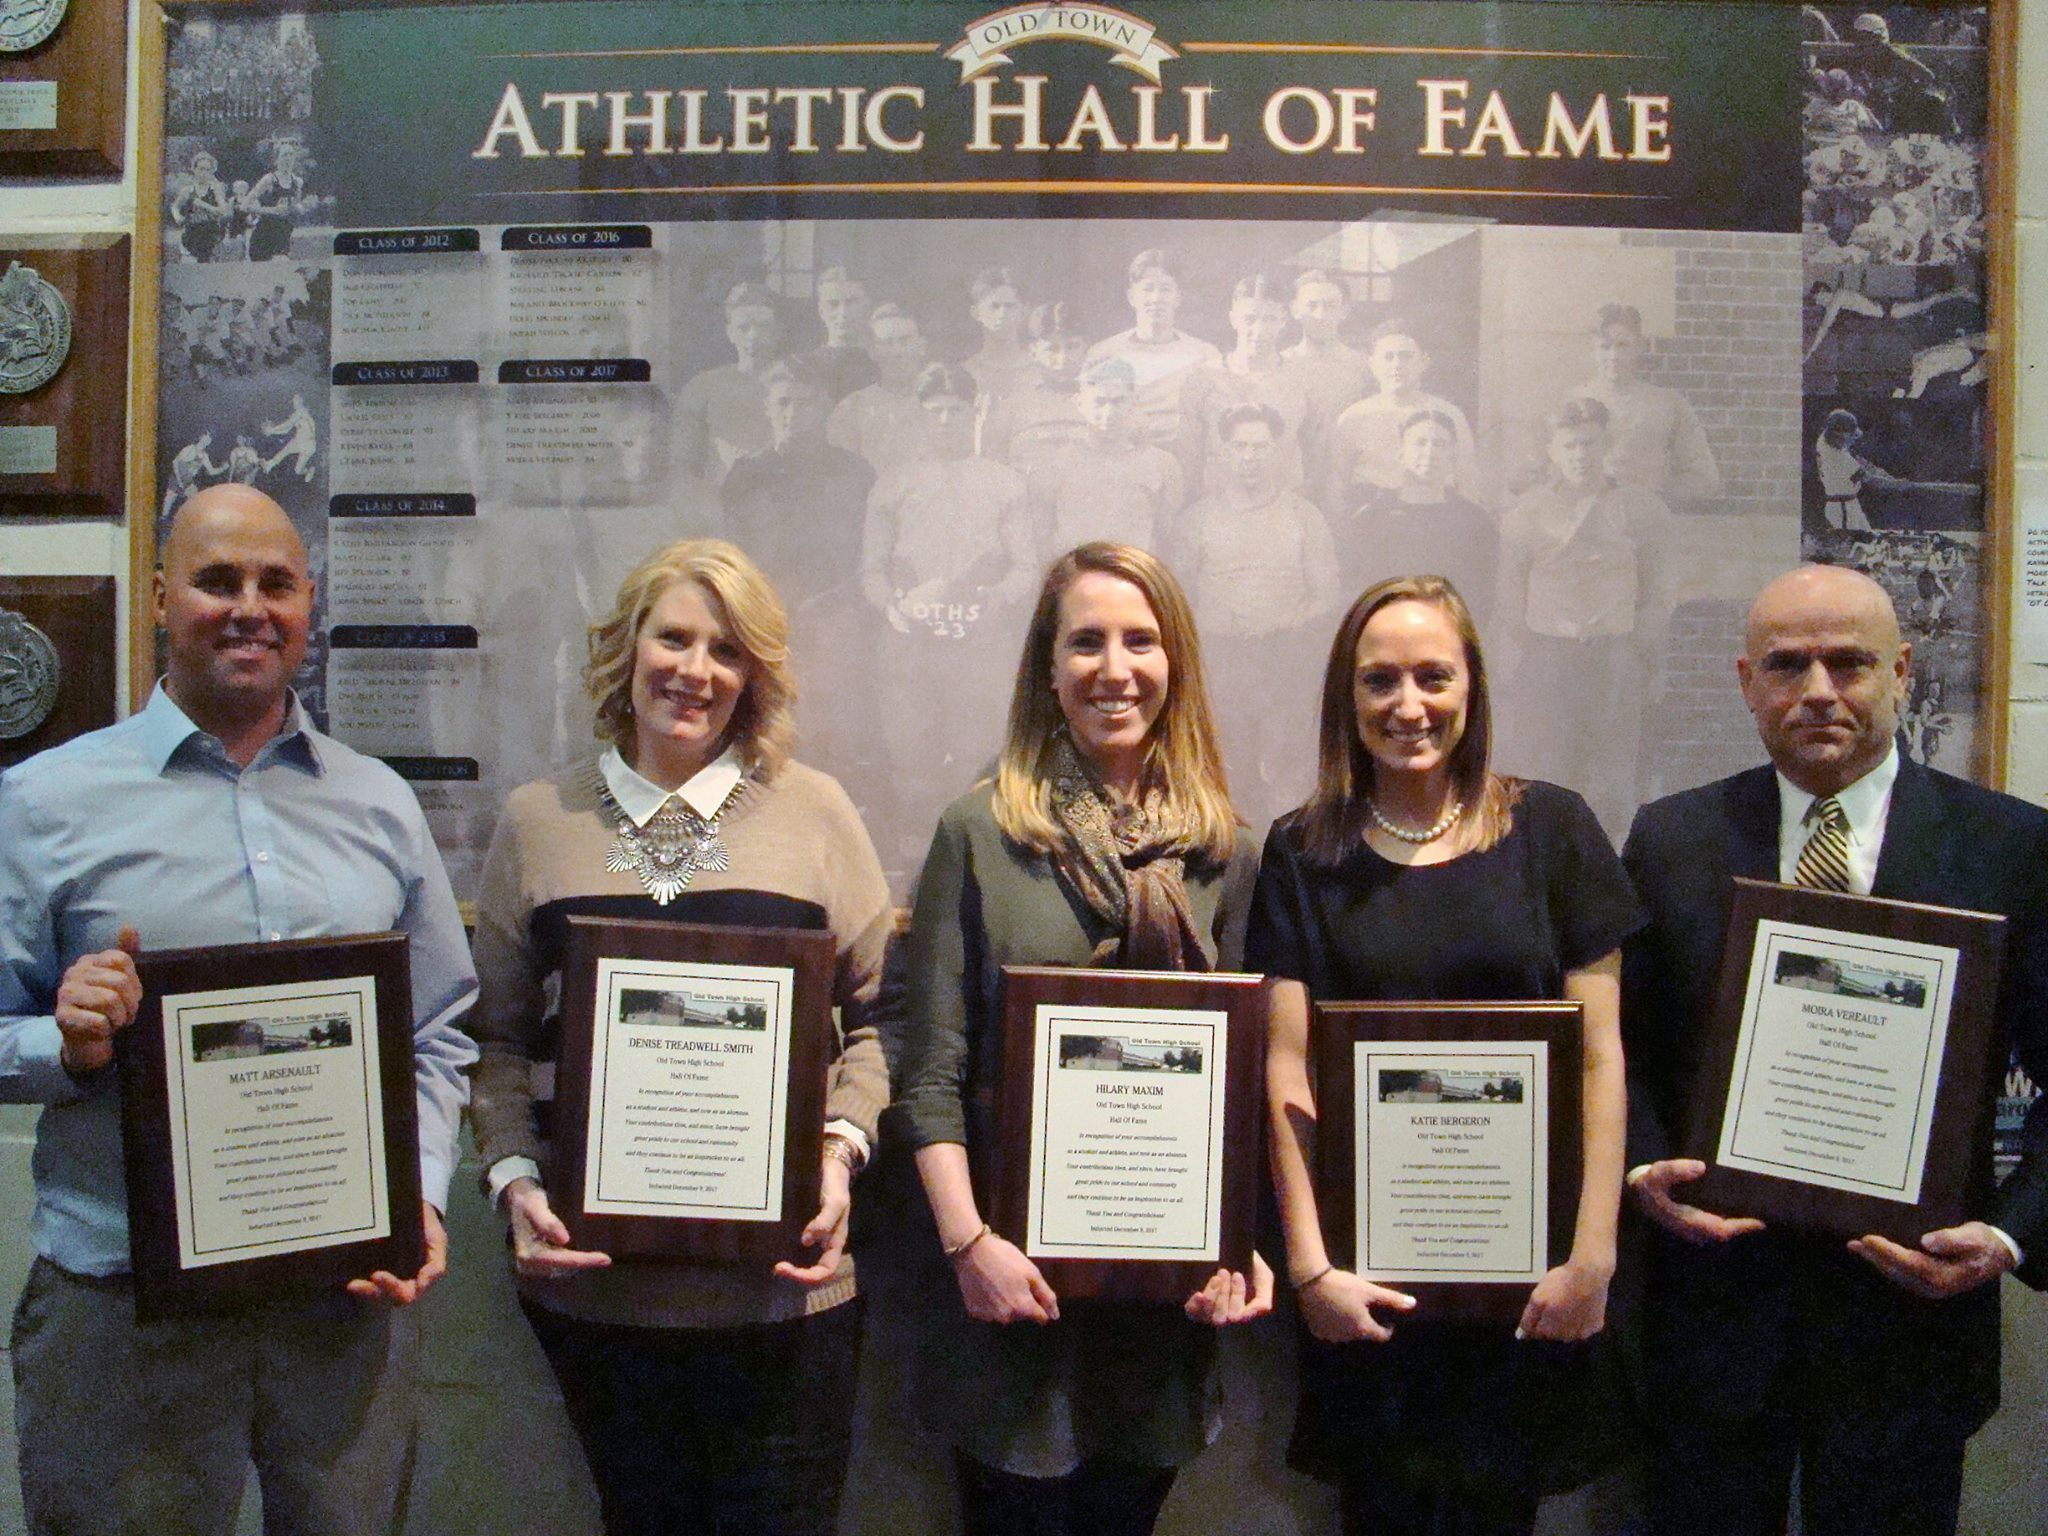 1540301200-athletic_hall_of_fame